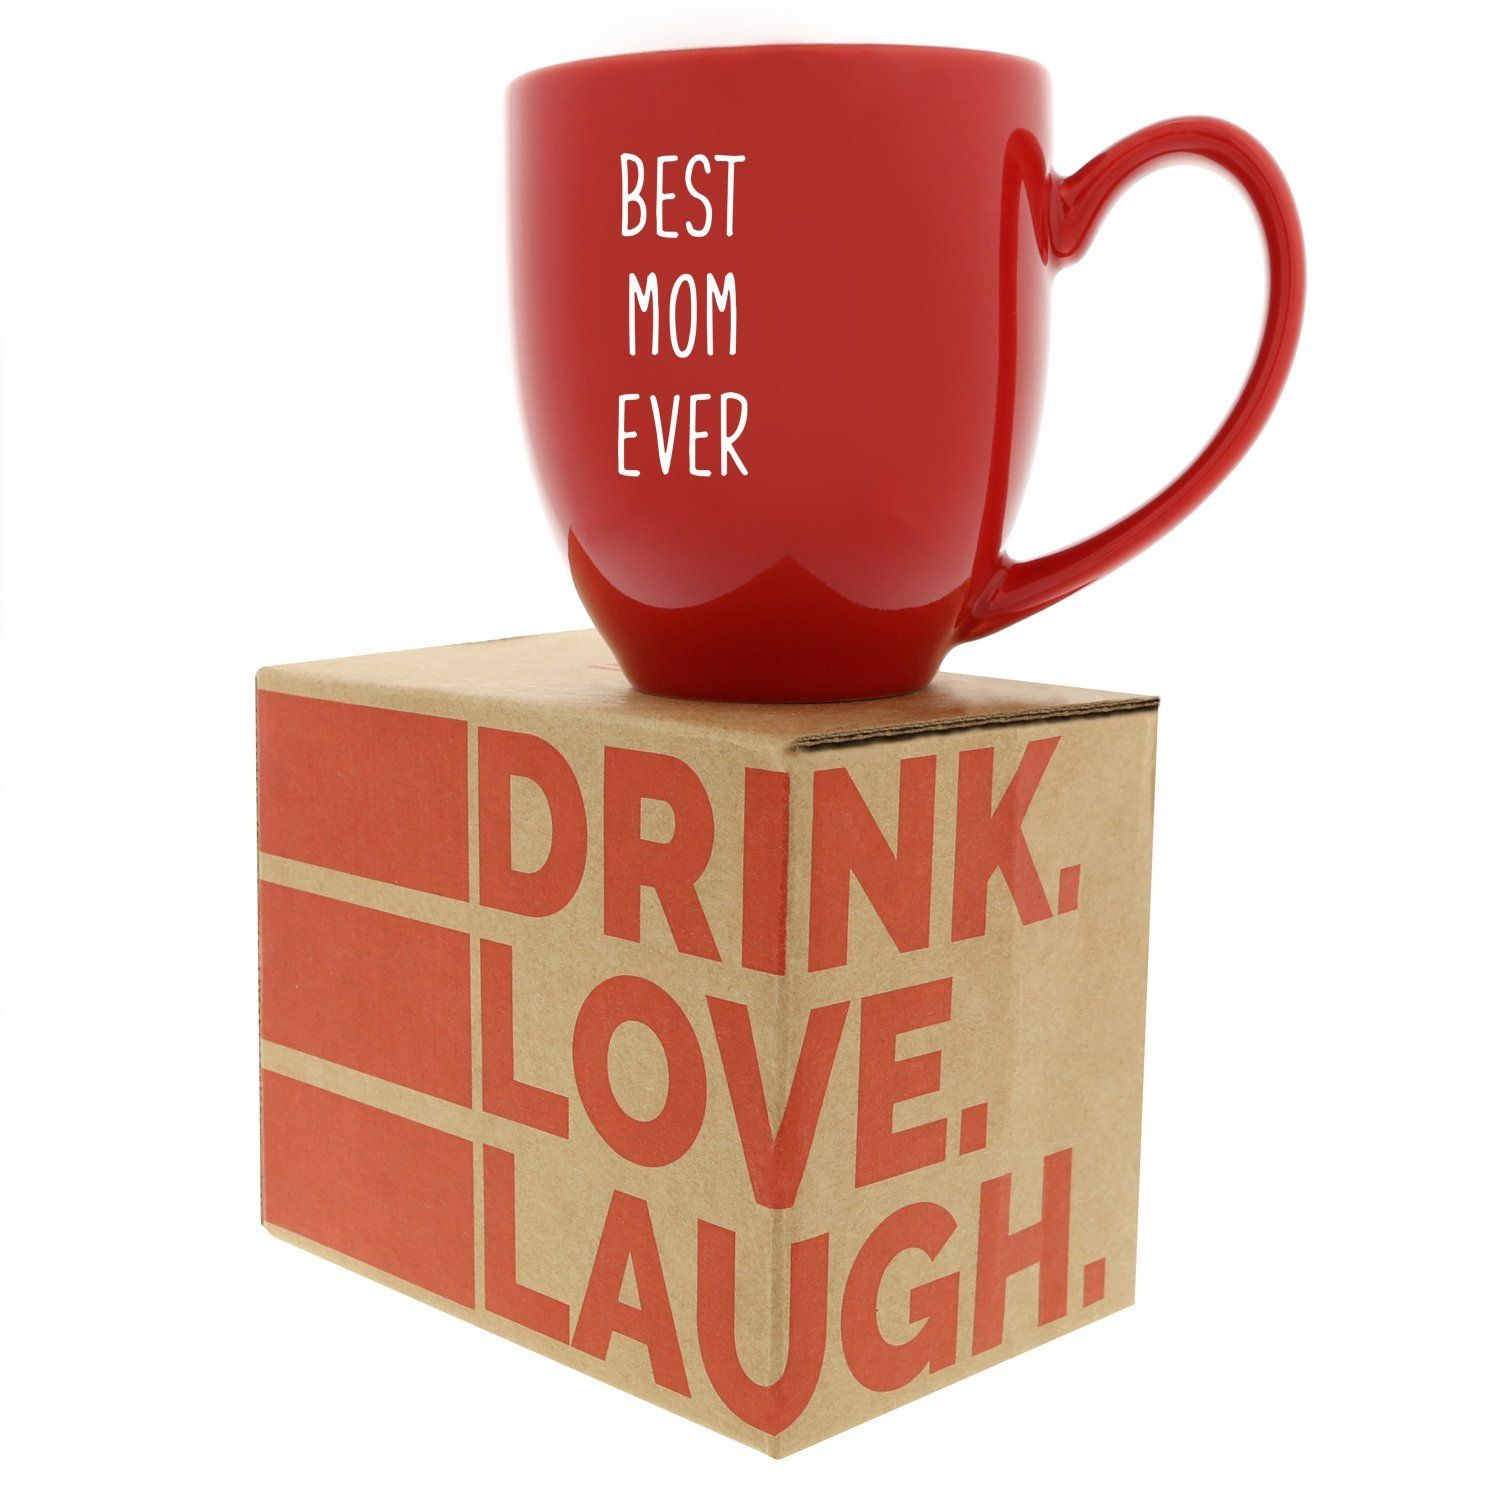 Best Mom Ever Coffee Mug Great Gift For Mothers Day Birthday Christmas Best Ideas Gifts For Women Grandma Mother Day Gifts Best Mom Christmas Gifts For Mom